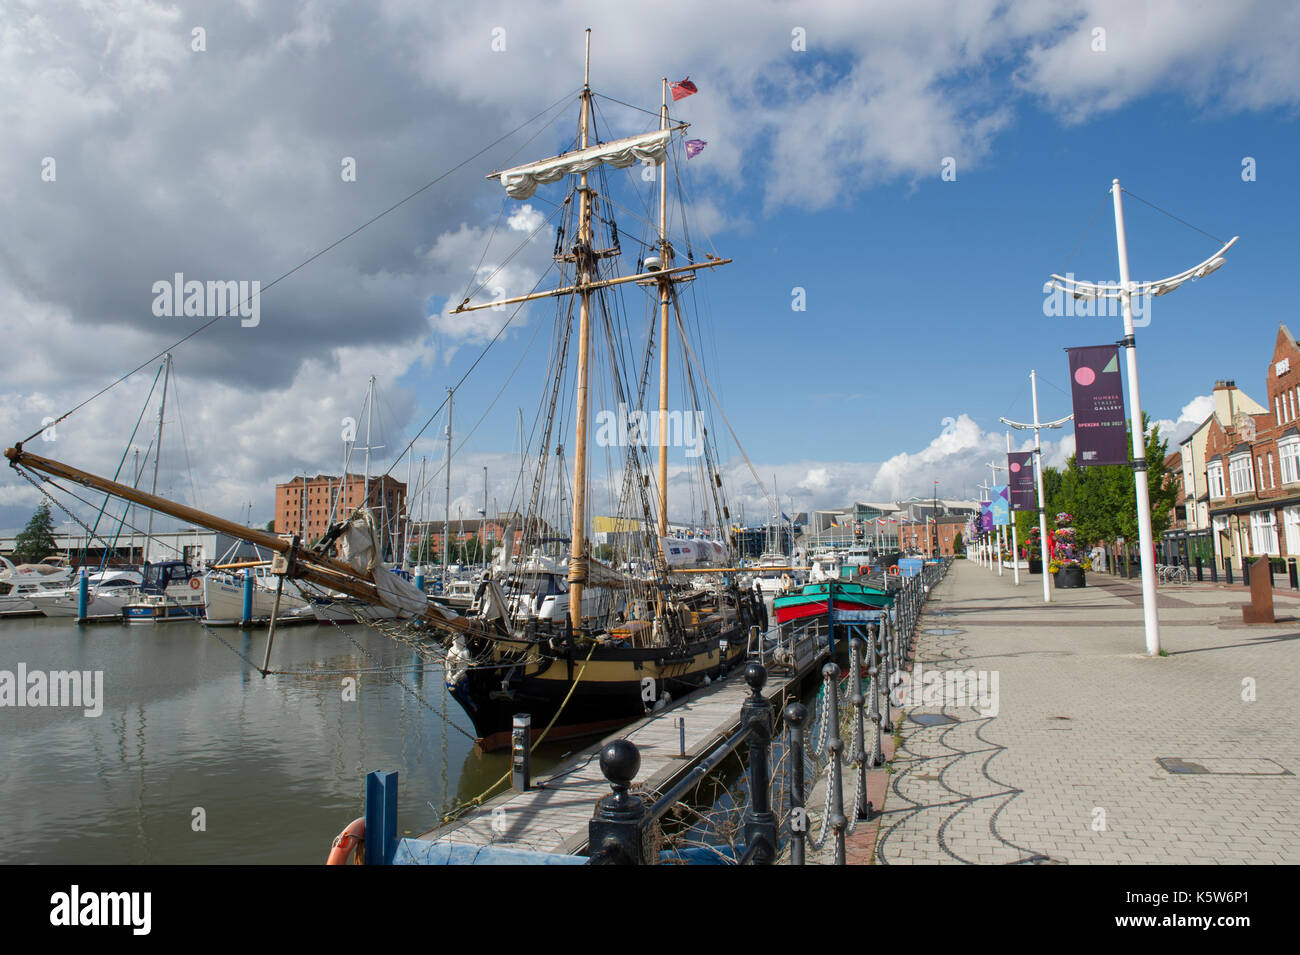 HMS Pickle docked at the Marina in Kingston Upon Hull, UK City Of Culture 2017 - Stock Image